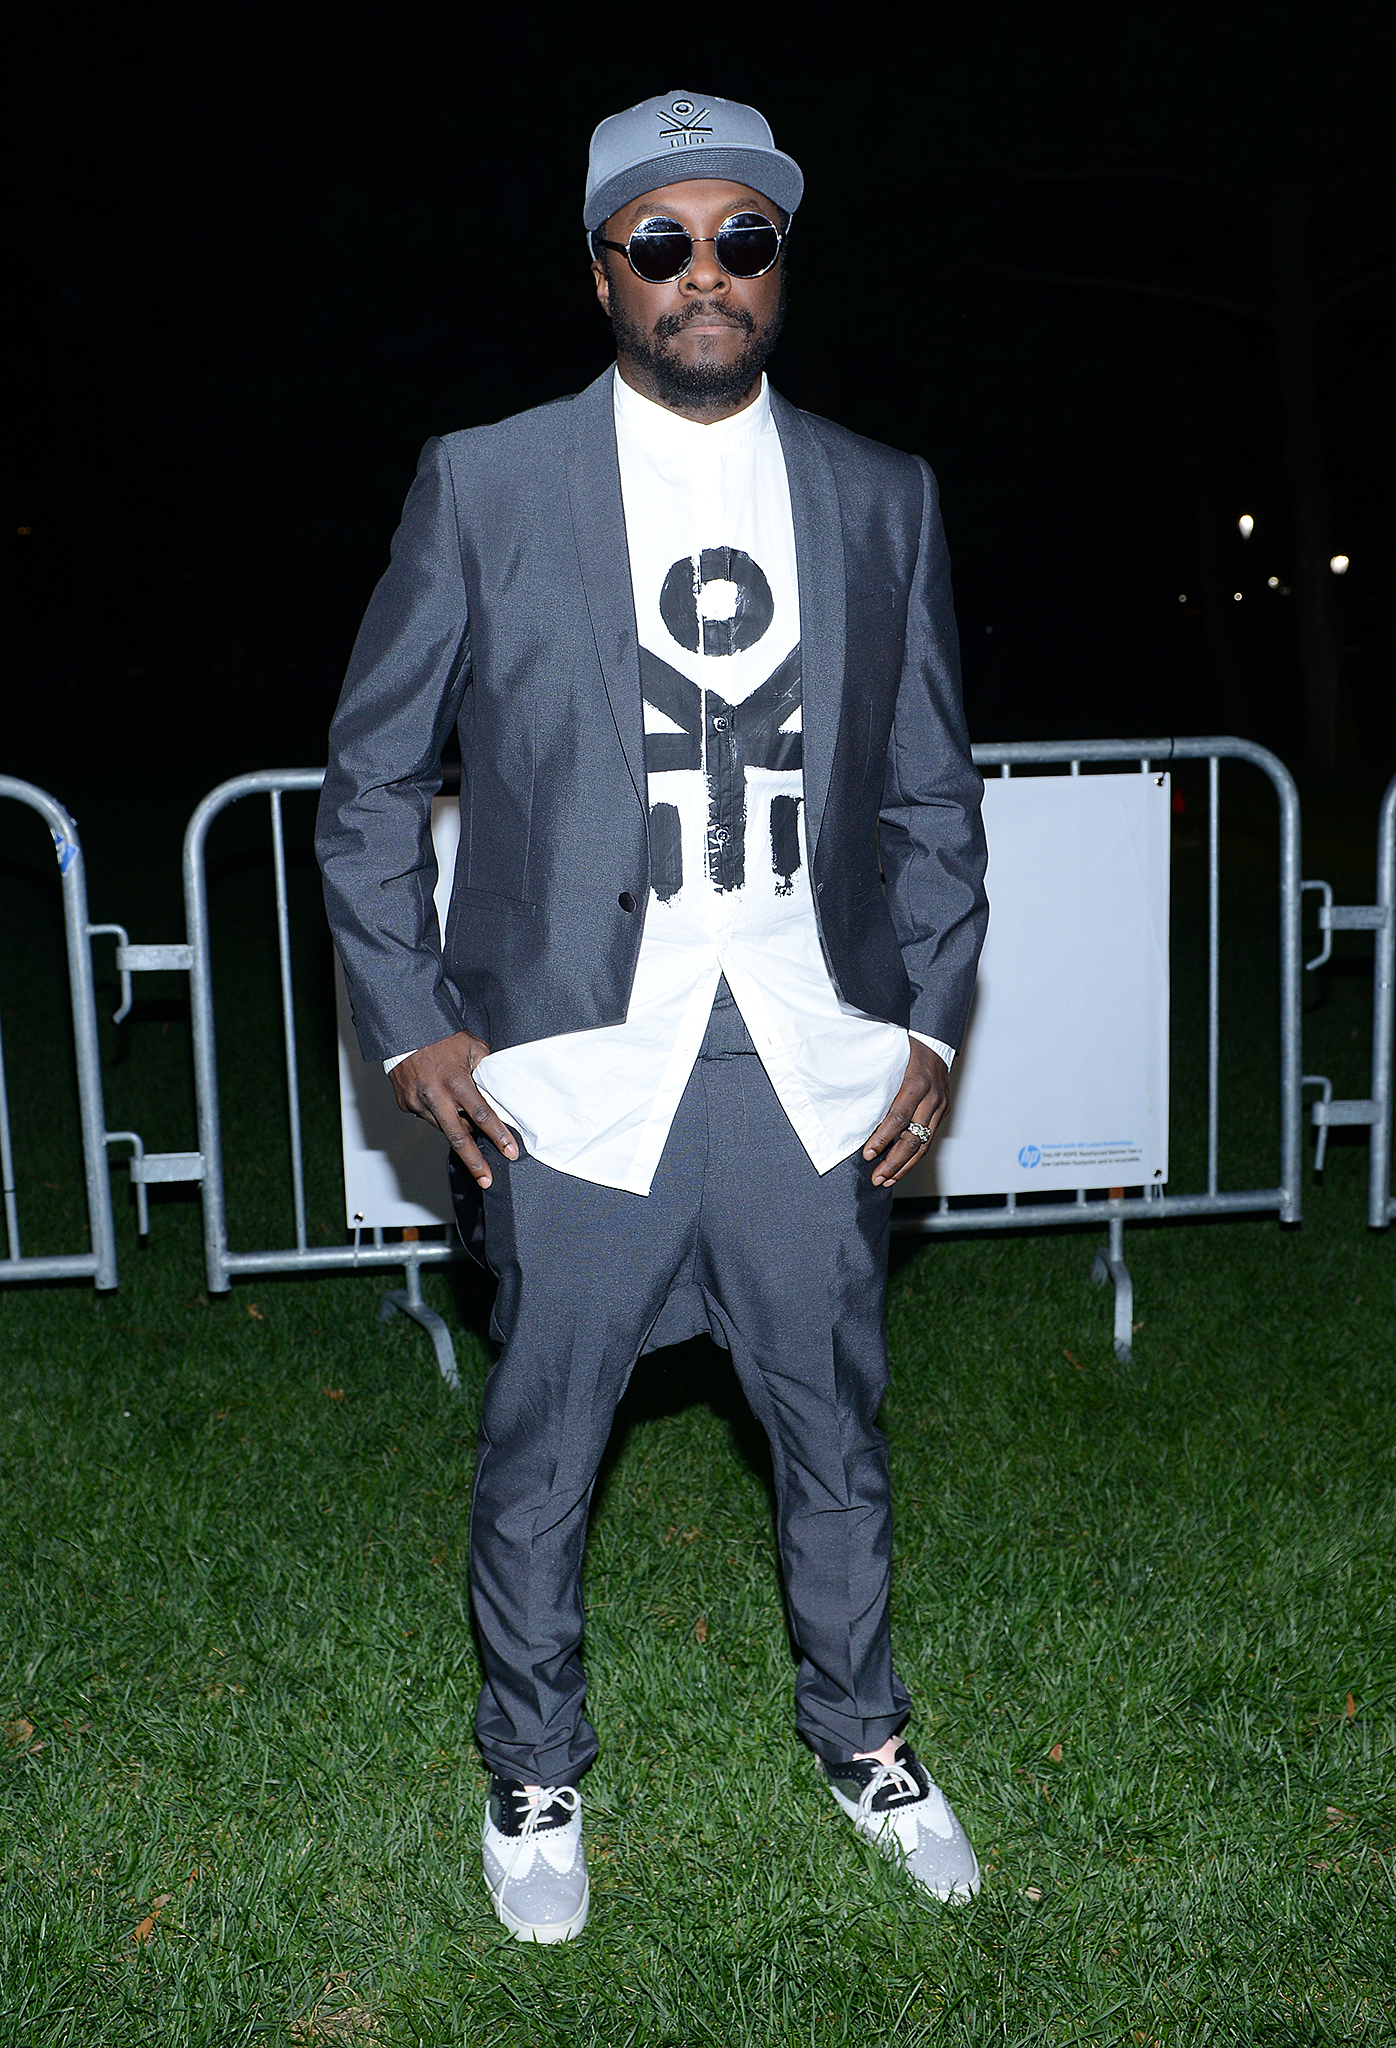 Will.i.am poses in his EKOCYCLE suit at the Global Music Festival. (Getty)